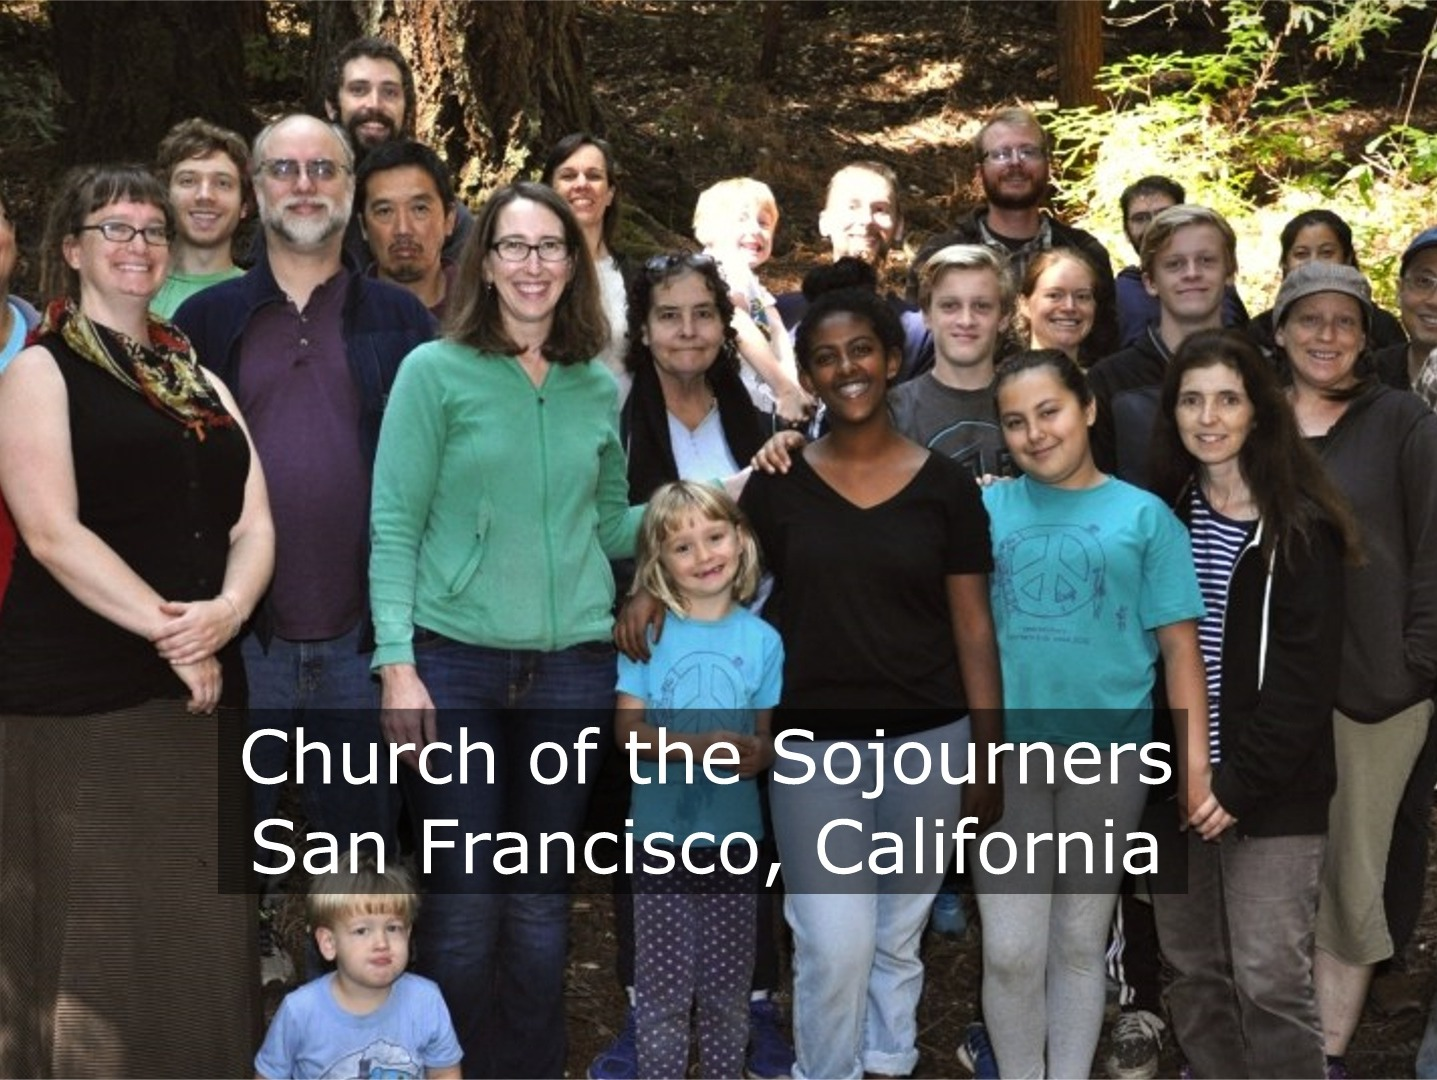 Church of the Sojourners - Church of the Sojourners is a Christ-centered intentional community which is part of the Anabaptist movement. The group does not focus on doctrine, but desire to be deeply rooted in historically orthodox Christianity. The Church wants to be strong in their Christian convictions, strong enough to resist the corrosive elements of the culture, and to be committed to Christian unity in a way that allows them to be in disagreement with brothers and sisters at times without being divisive.